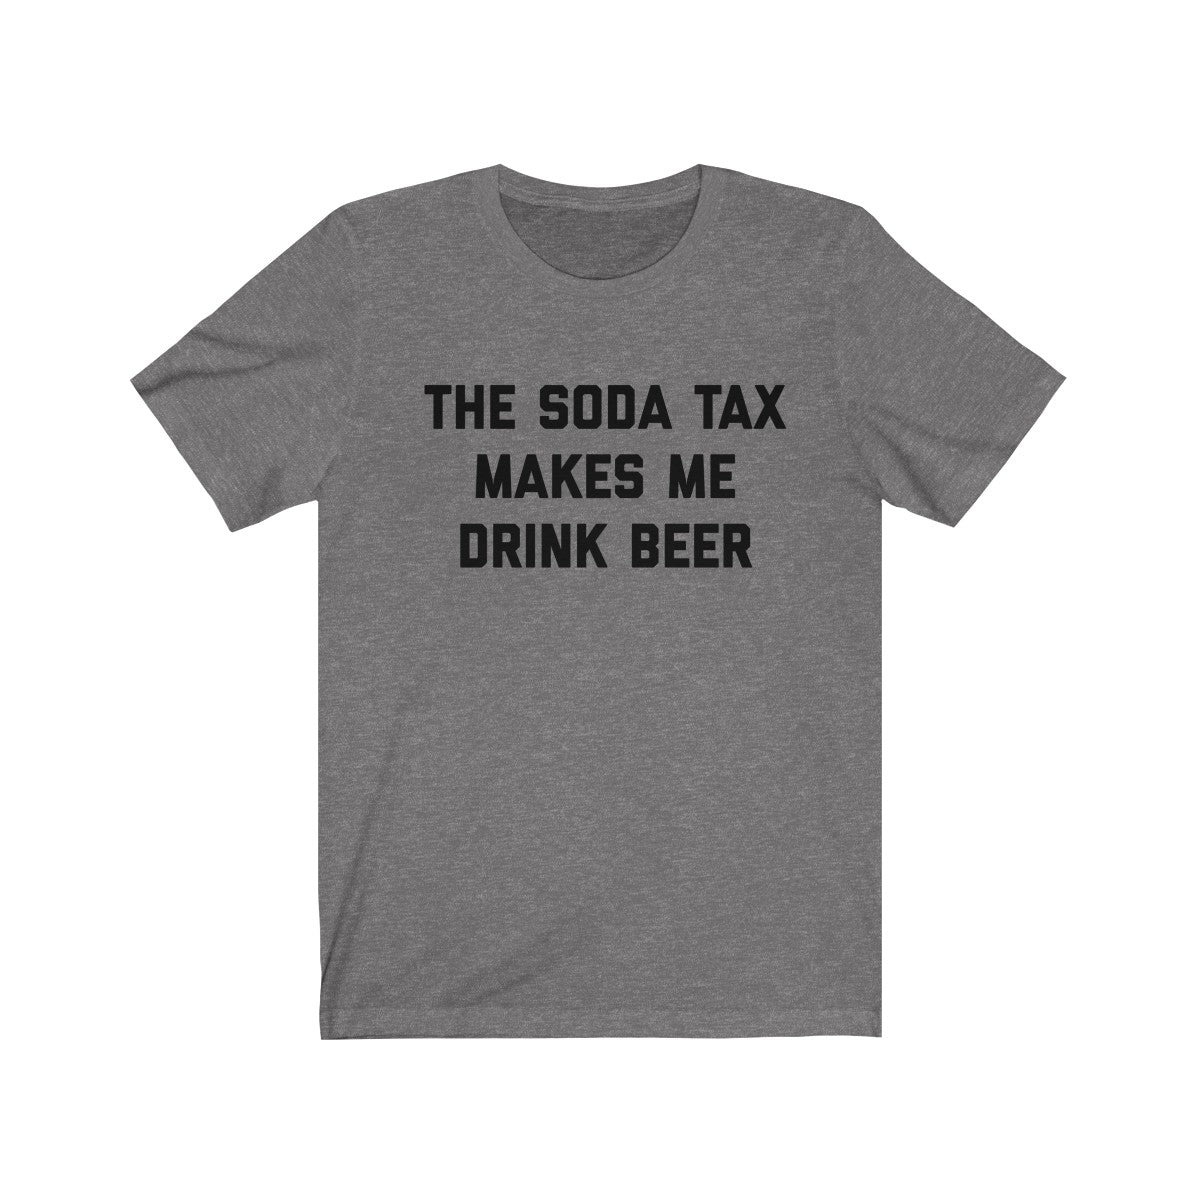 The Soda Tax Makes Me Drink Beer Unisex Jersey Short Sleeve Tee